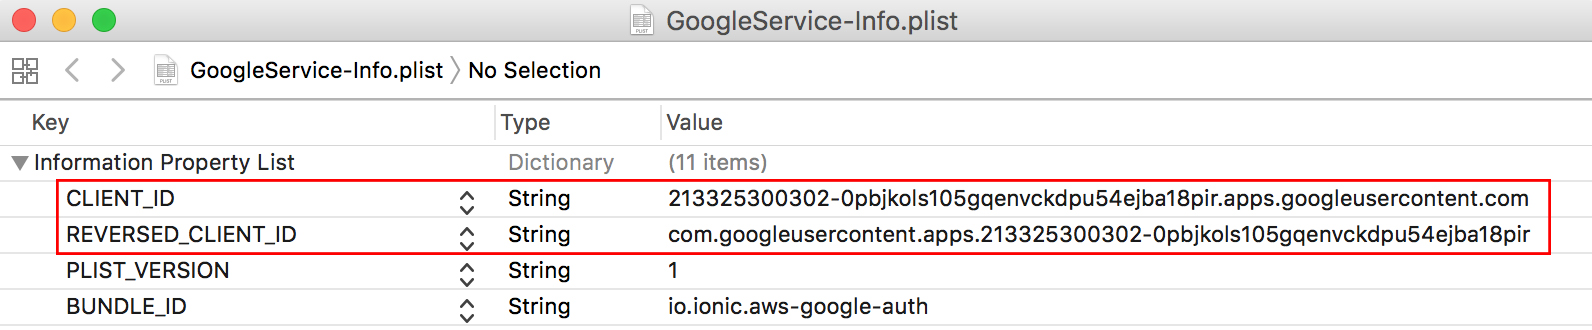 ionic AWS Google oauth client id and reverse id